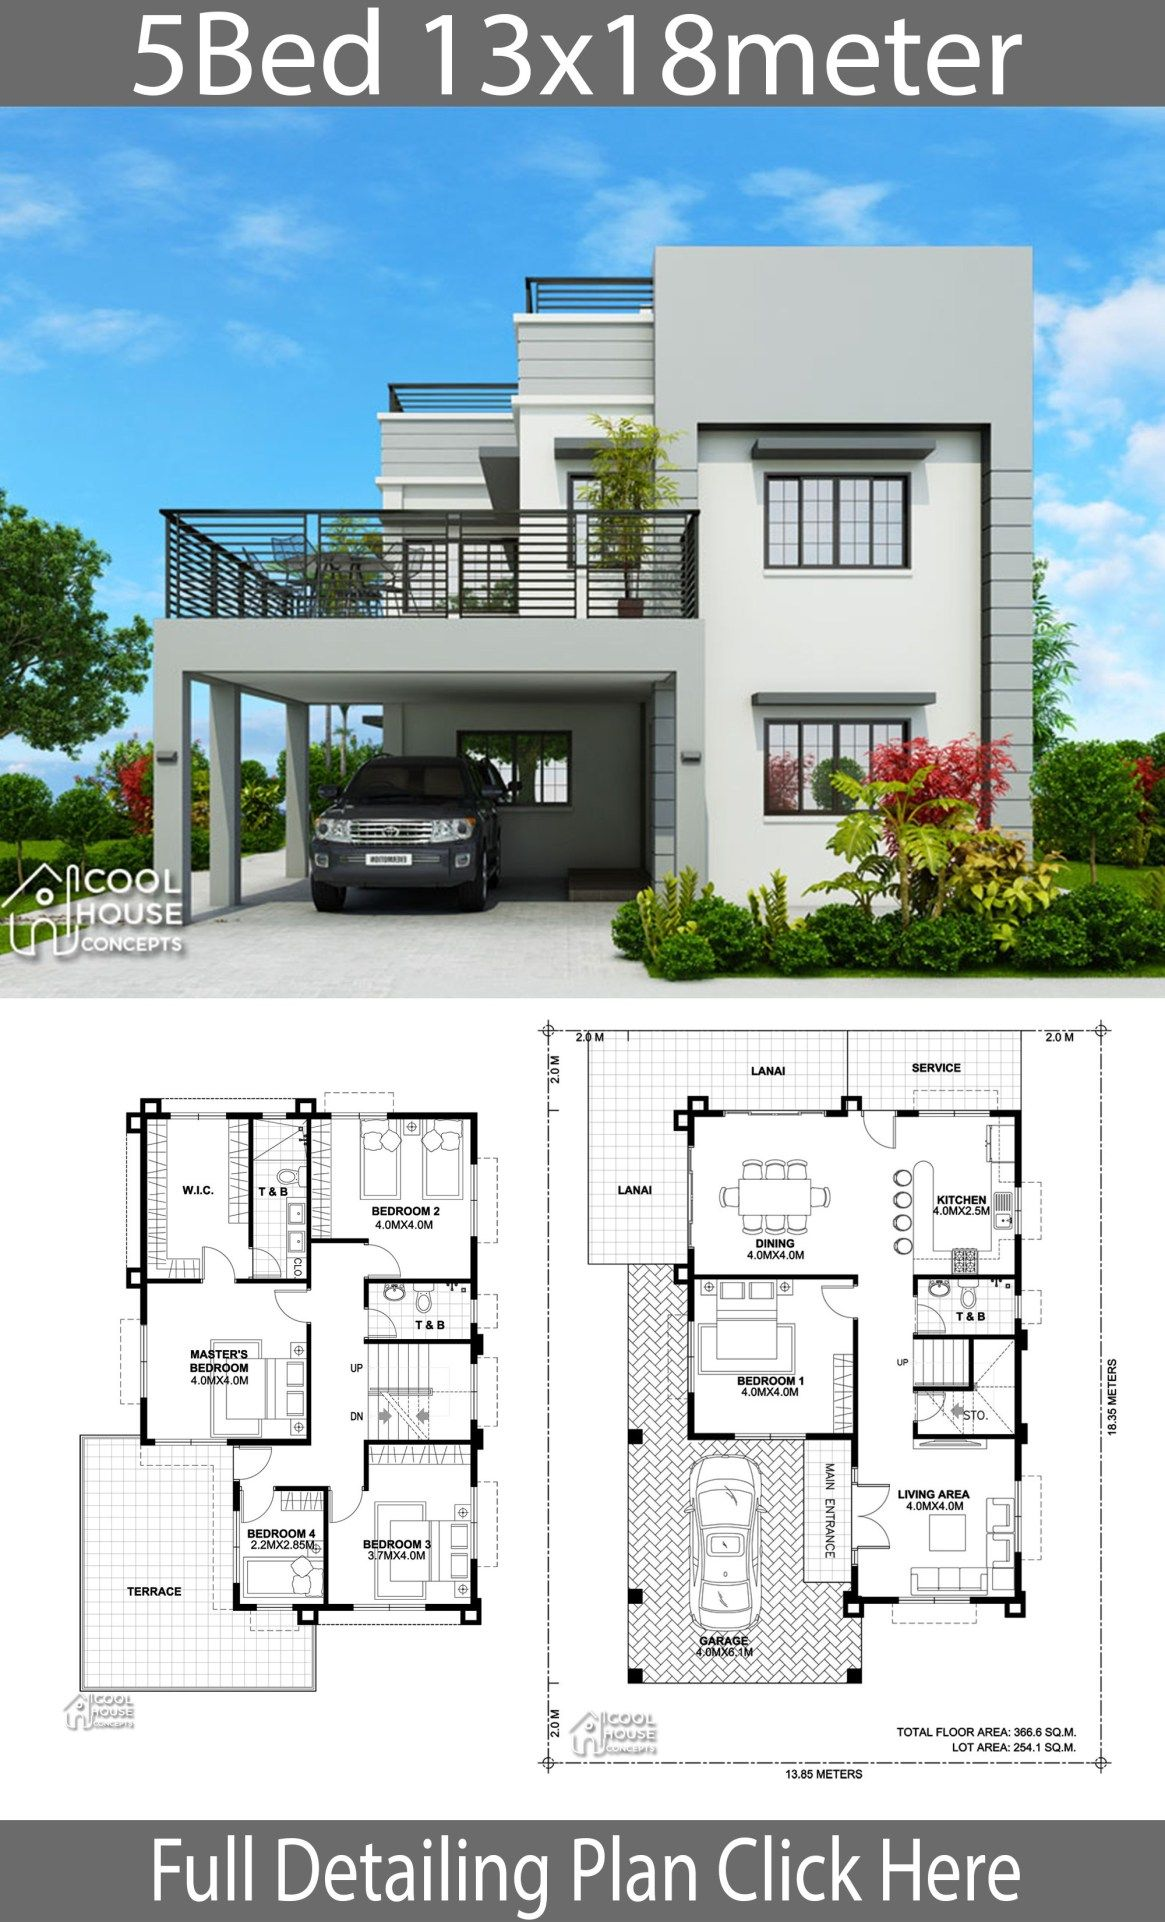 Home Design Plan 13x18m With 5 Bedrooms Home Design With Plansearch House Construction Plan House Plans Mansion Duplex House Design